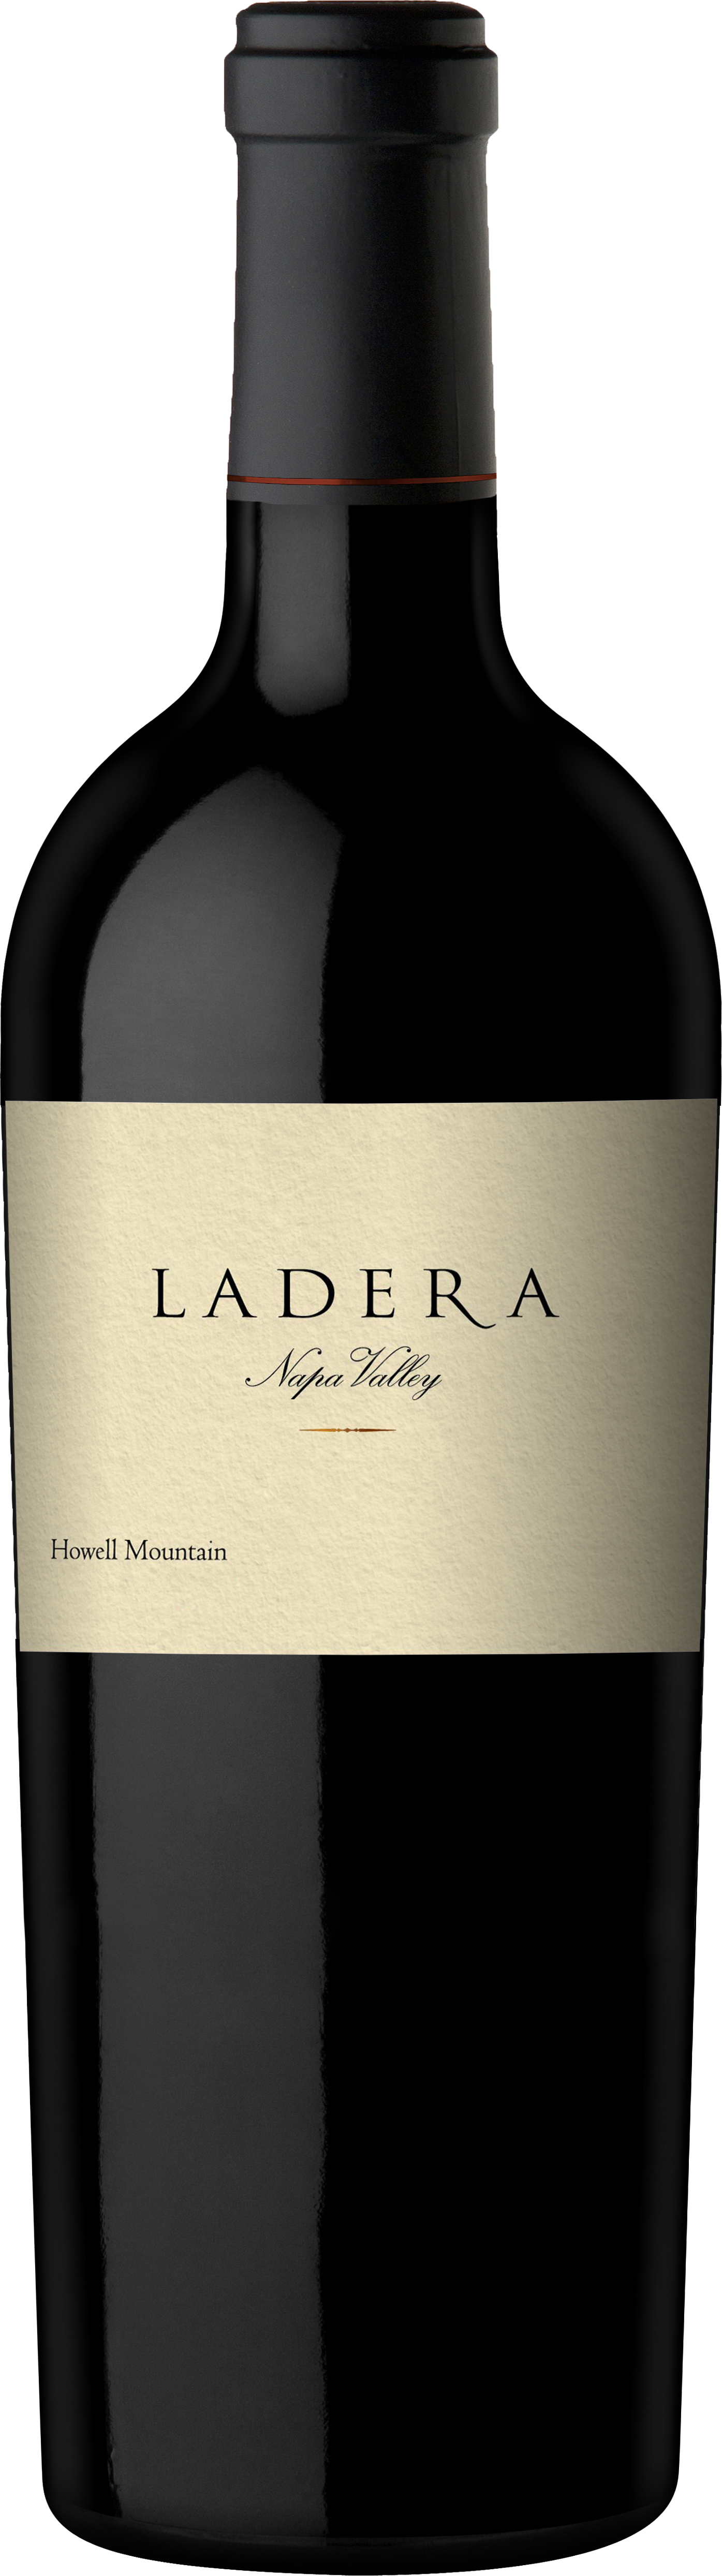 Product Image for 2000 Ladera Howell Mountain Cabernet Sauvignon